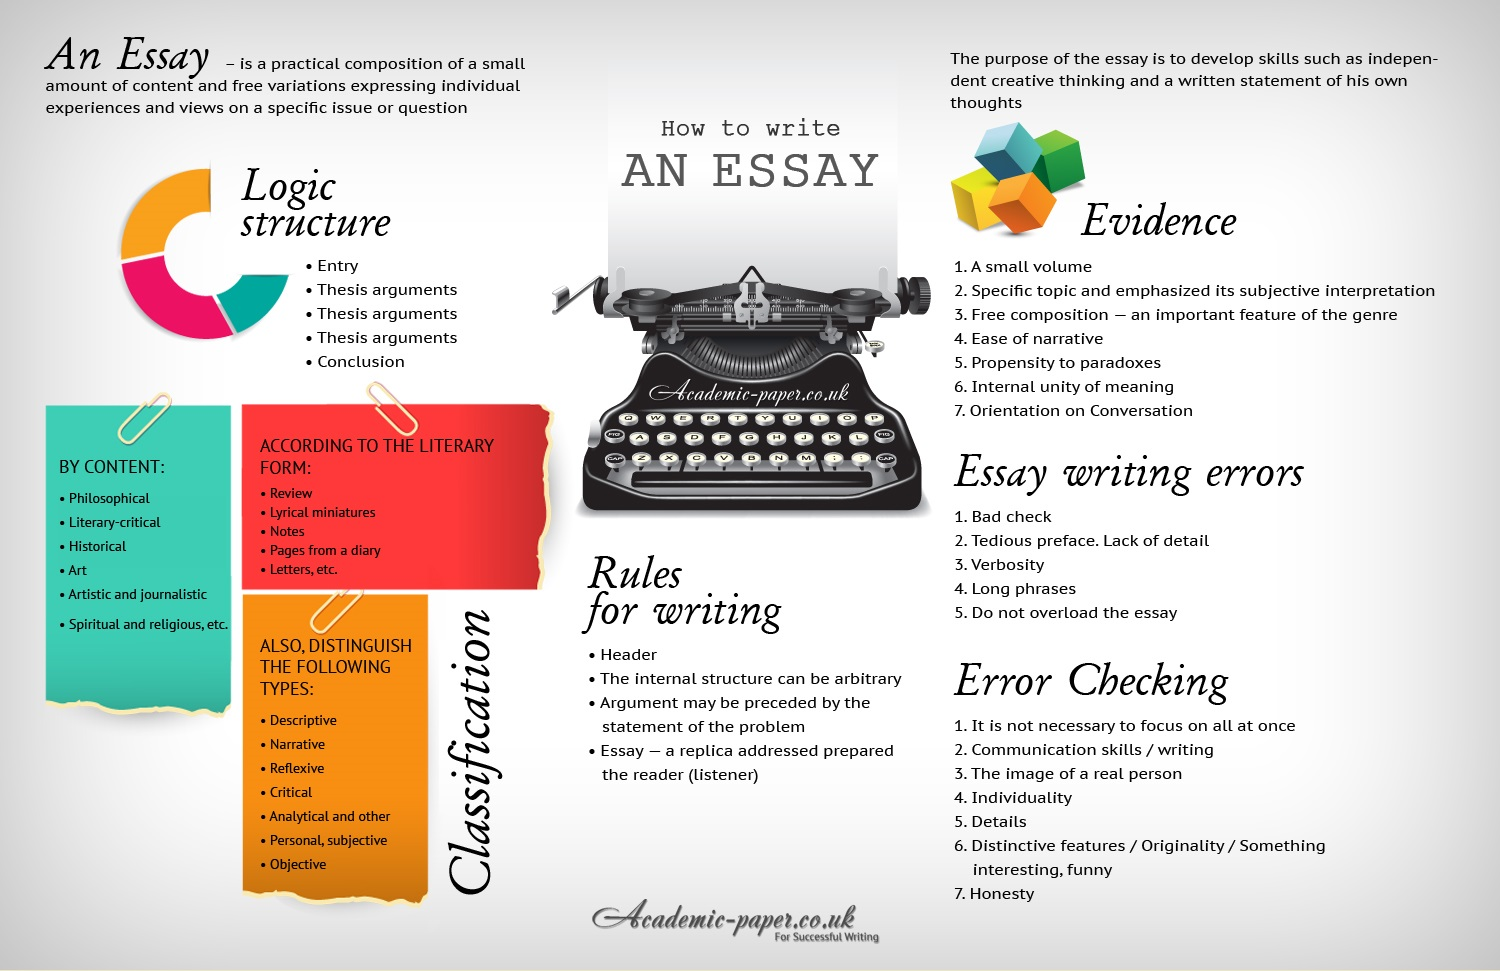 practice essay writting online Free essay writing online practice tests efl, esl, verbal, essay writing, college/undergrad: american literature, recognition of words, essay.